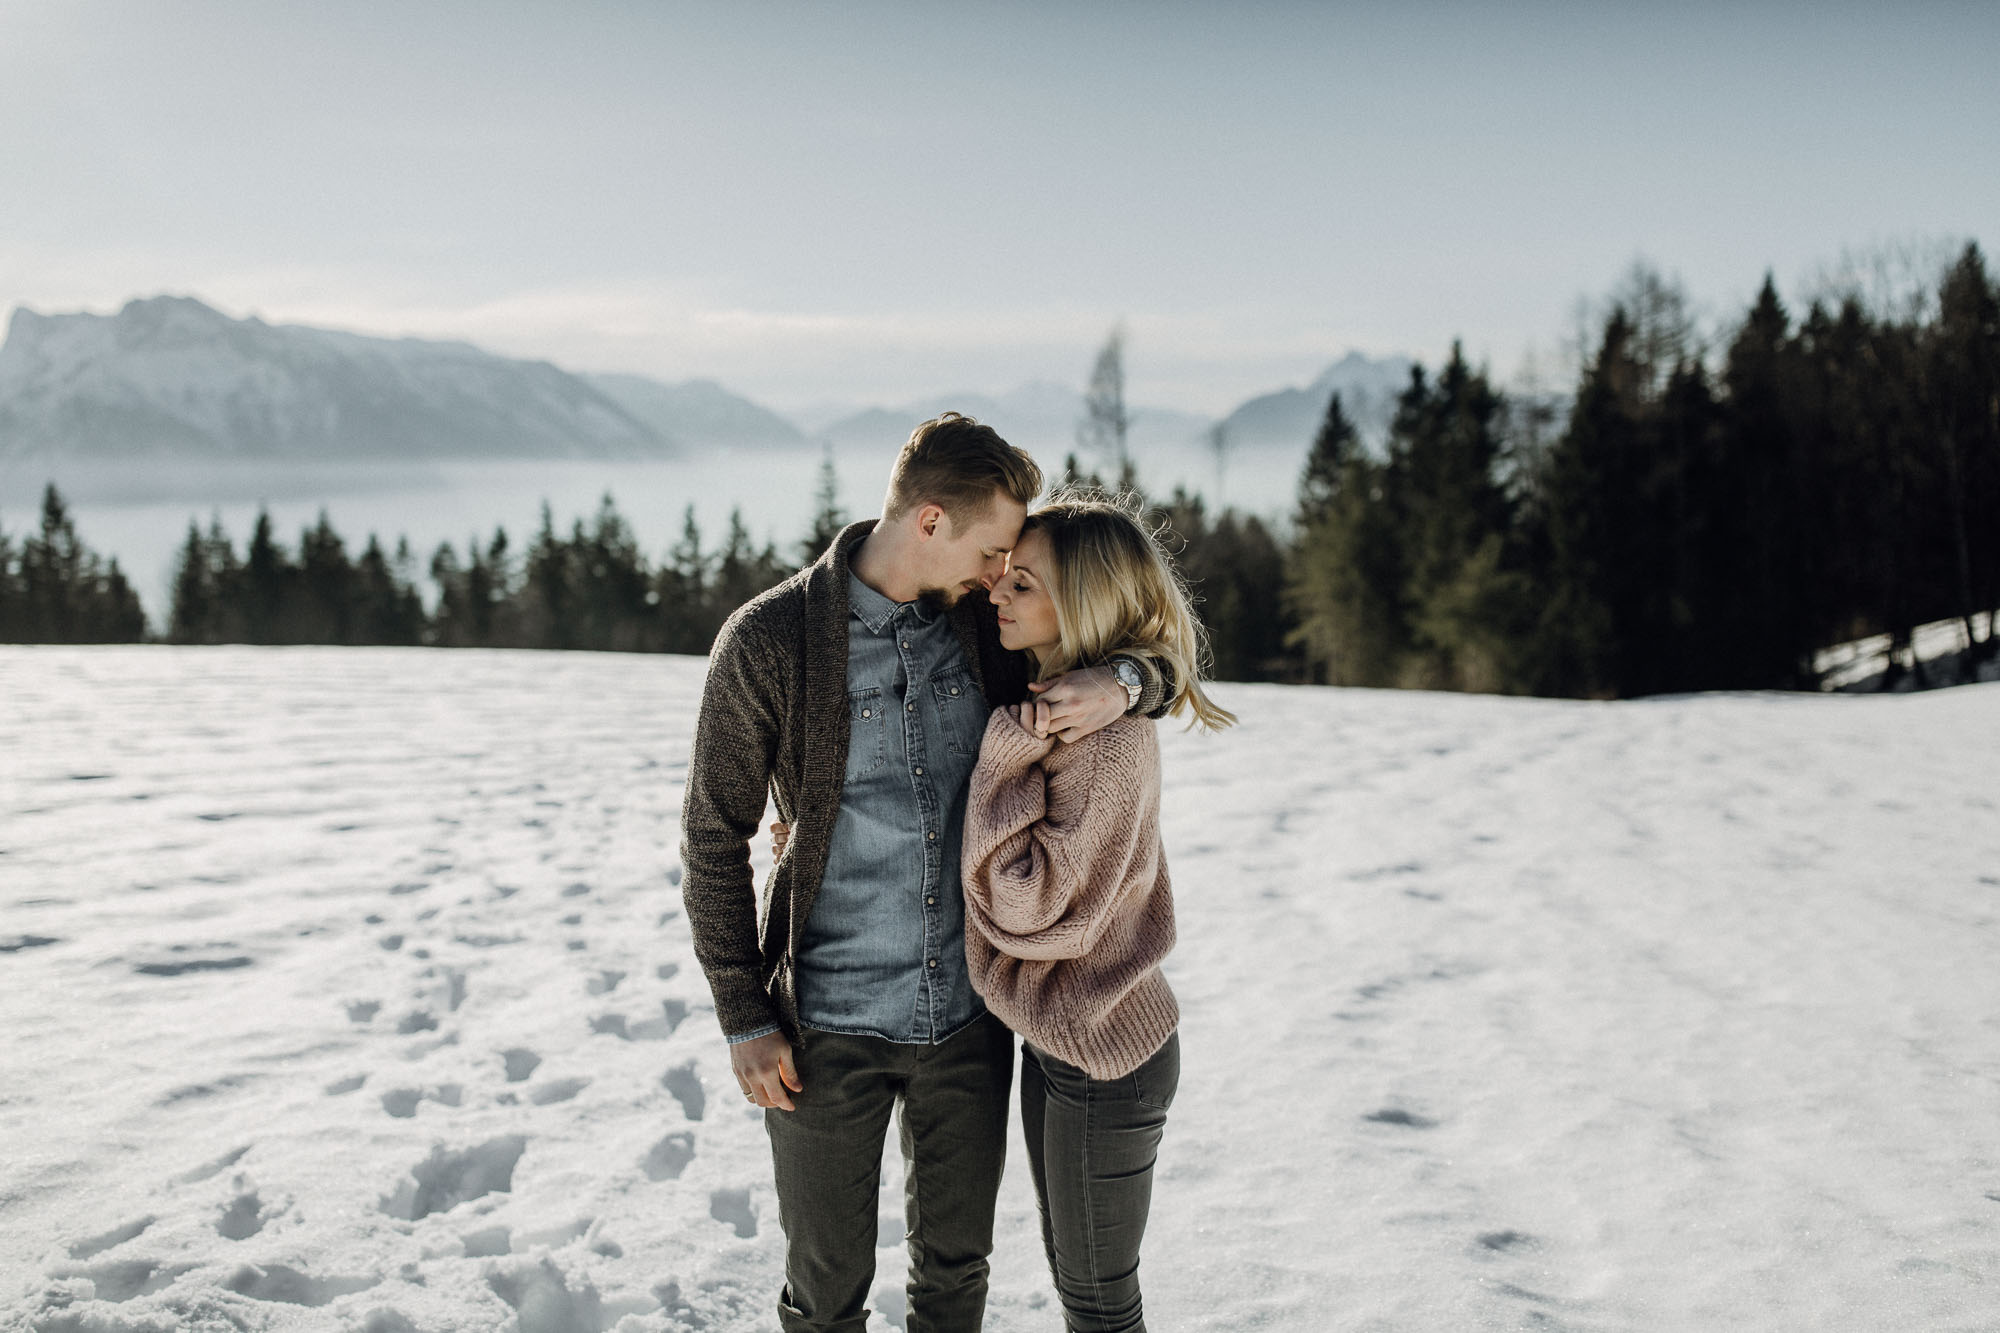 Winterliche Pärchenfotos in den Alpen - Raissa + Simon Fotografie